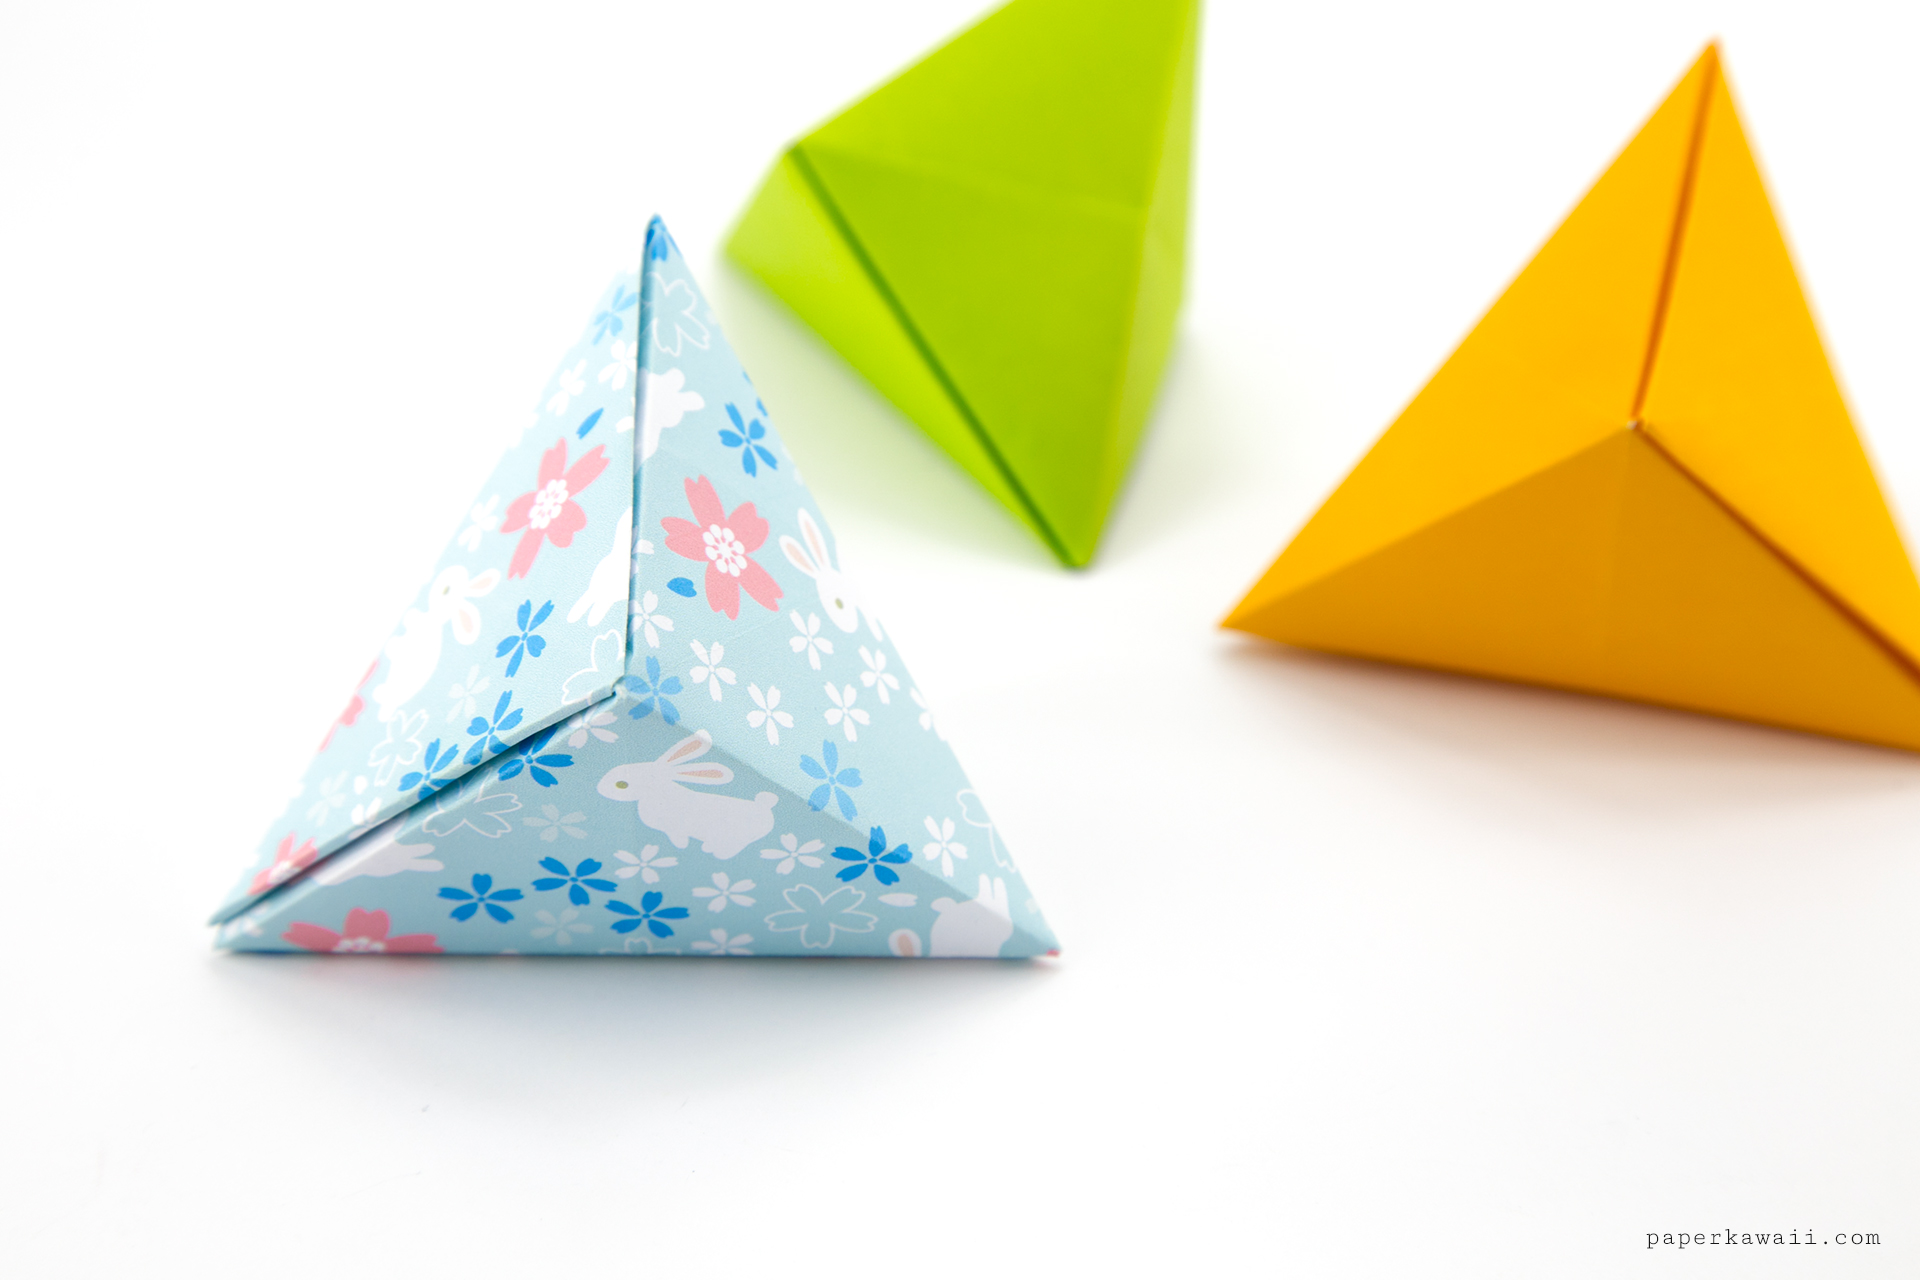 Origami Tripyramid Gift Box Tutorial (David Donahue) via @paper_kawaii